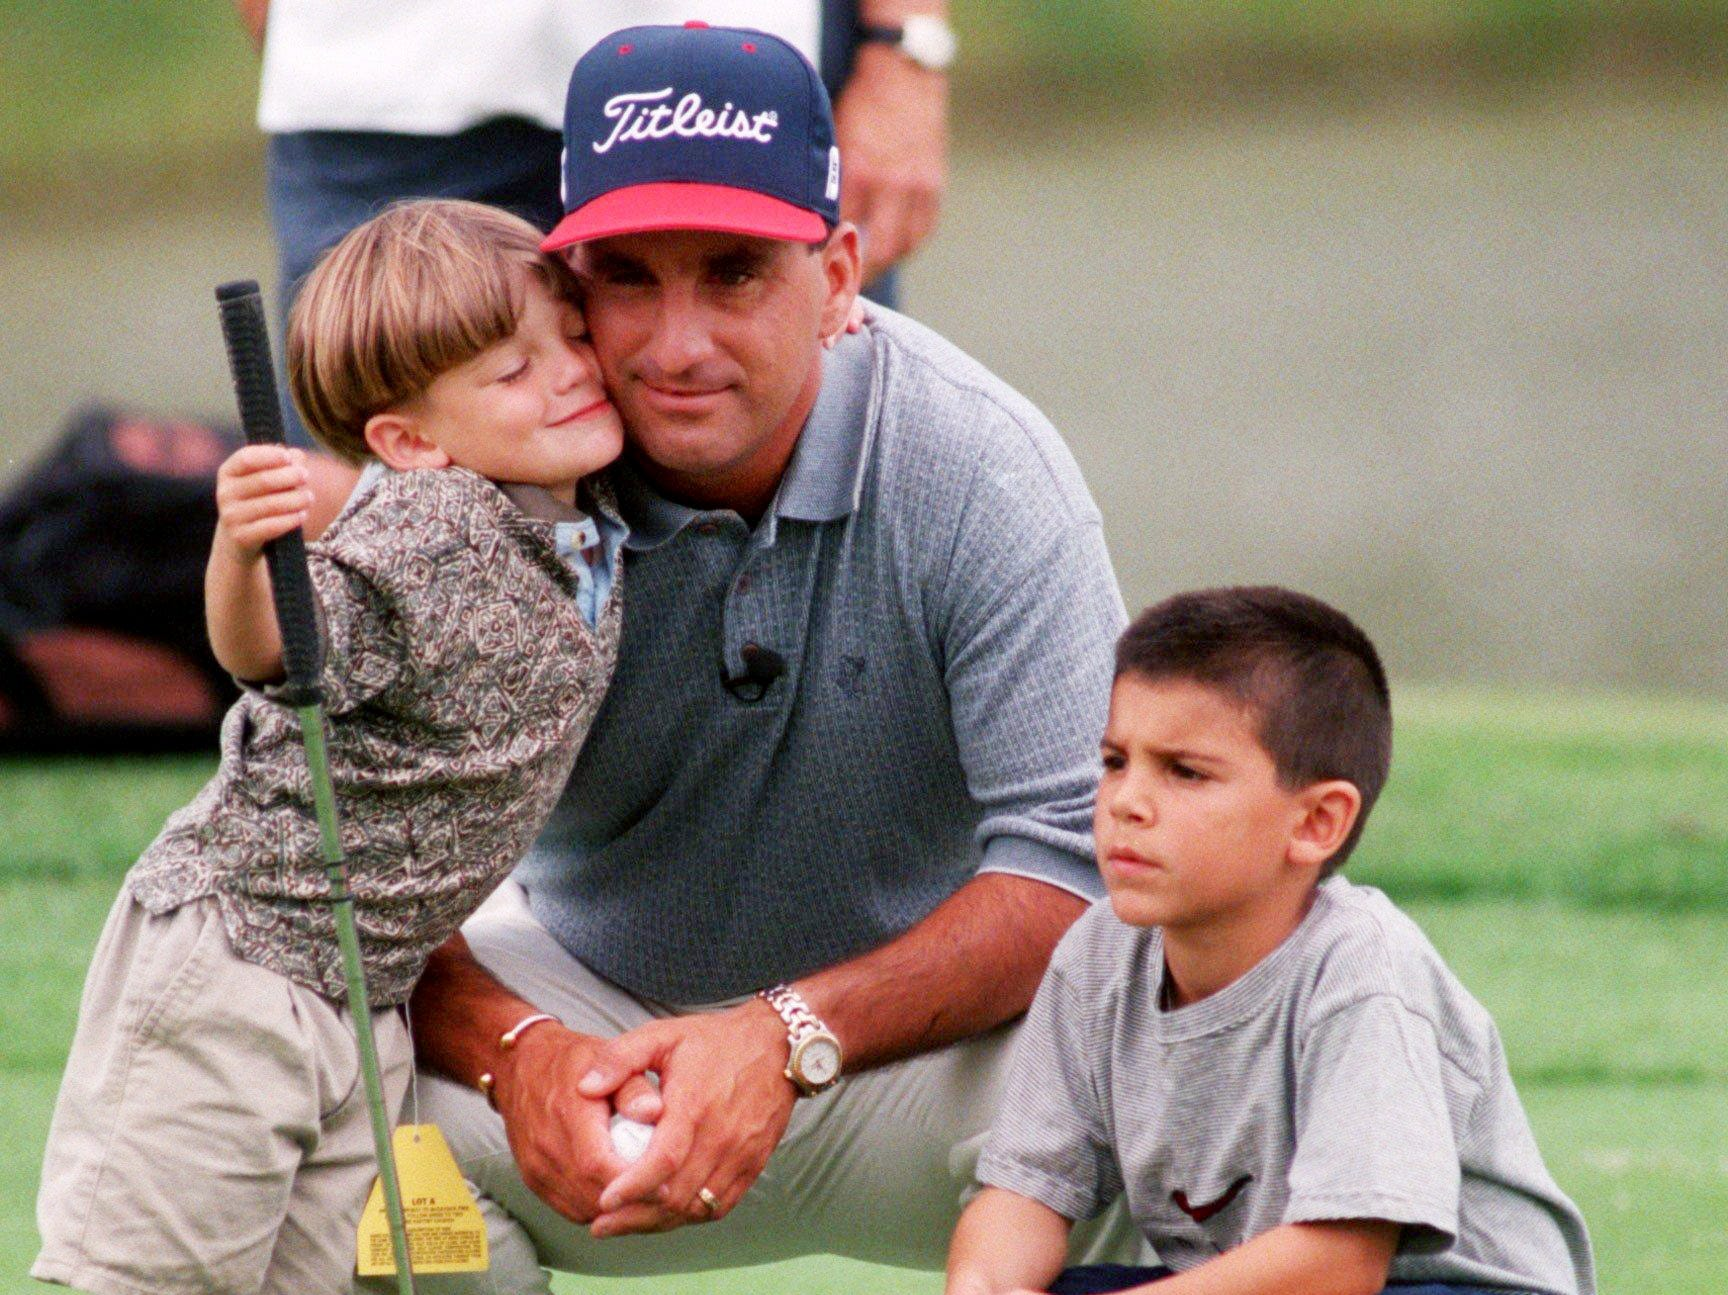 Kicker Al Del Greco of the Houston Oilers with sons Derrick 3-years-old and Trey 7-years-old, are on the 18th green of the Gary Chapman Celebrity Shoot-Out at the Bellsouth Senior Classic June 3, 1997 in Nashville. The Oiler gets a hug from son Derrick while the three were waiting for their turn to put.